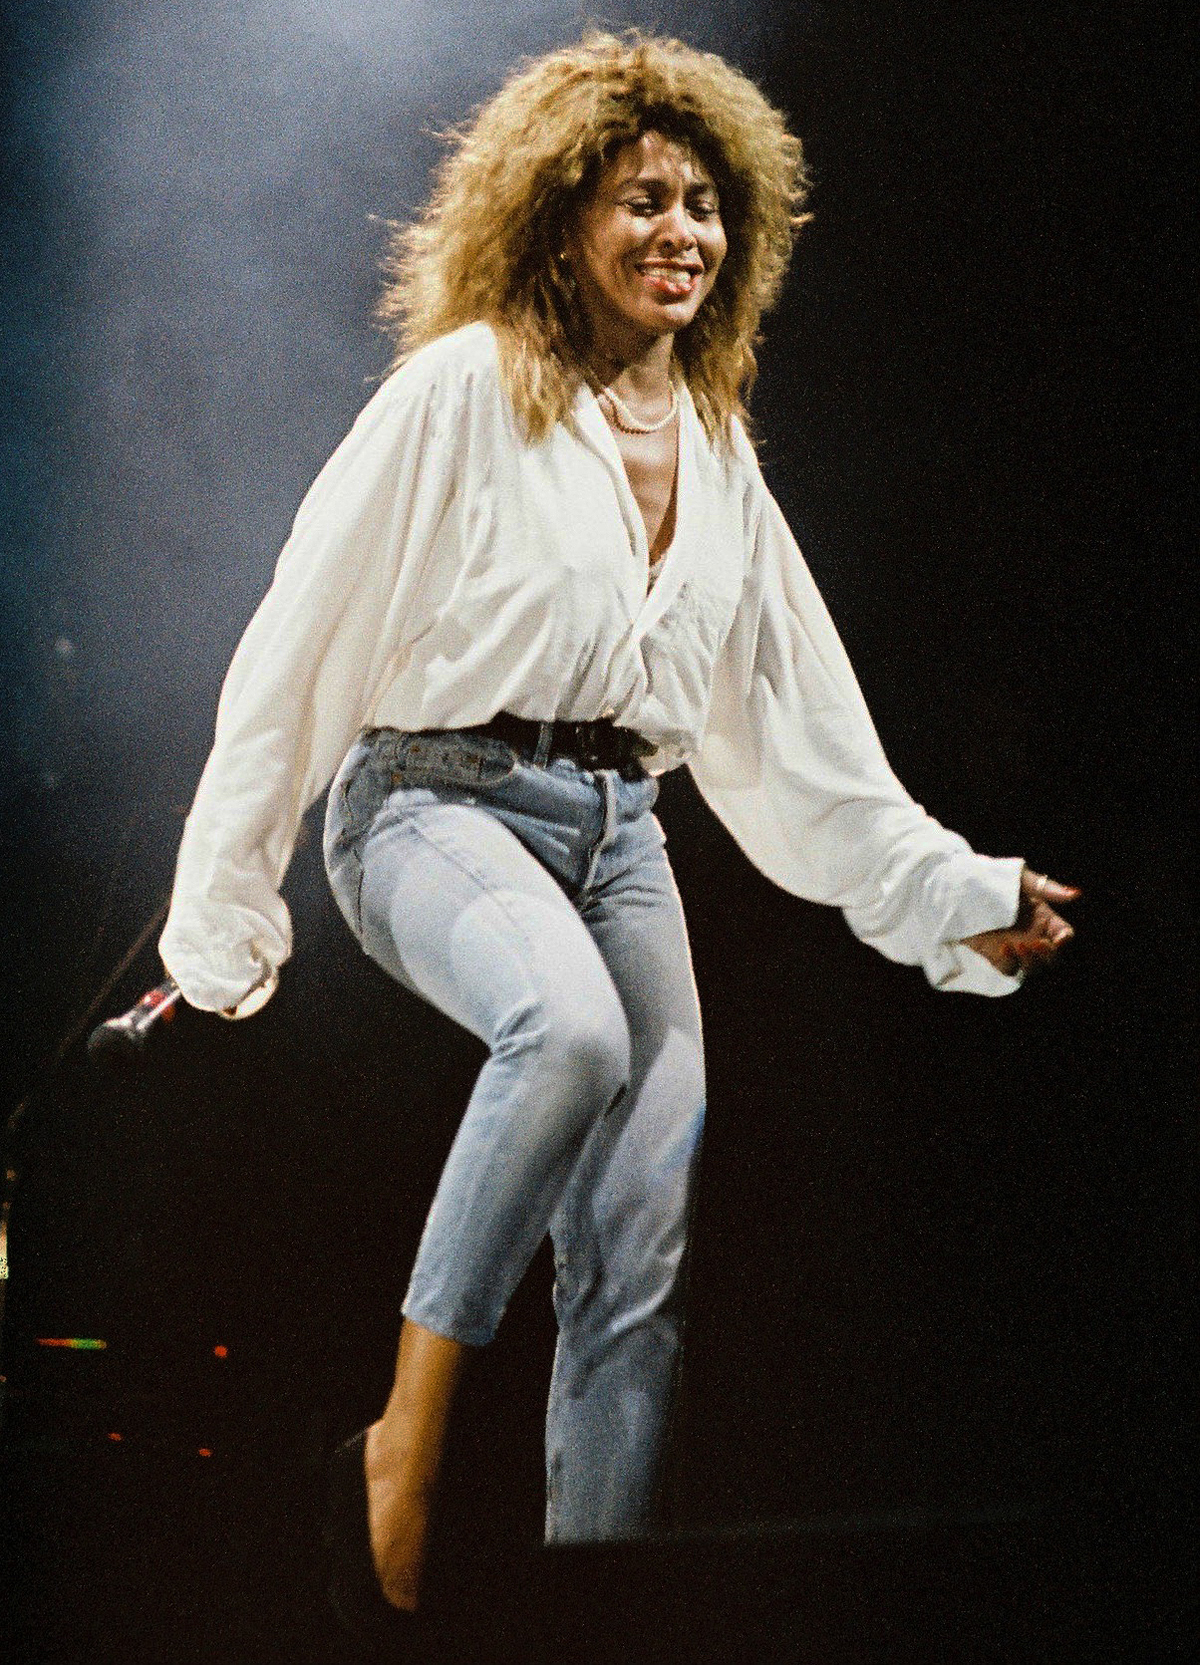 Tina Turner Performs At Woburn Abbey in 1990